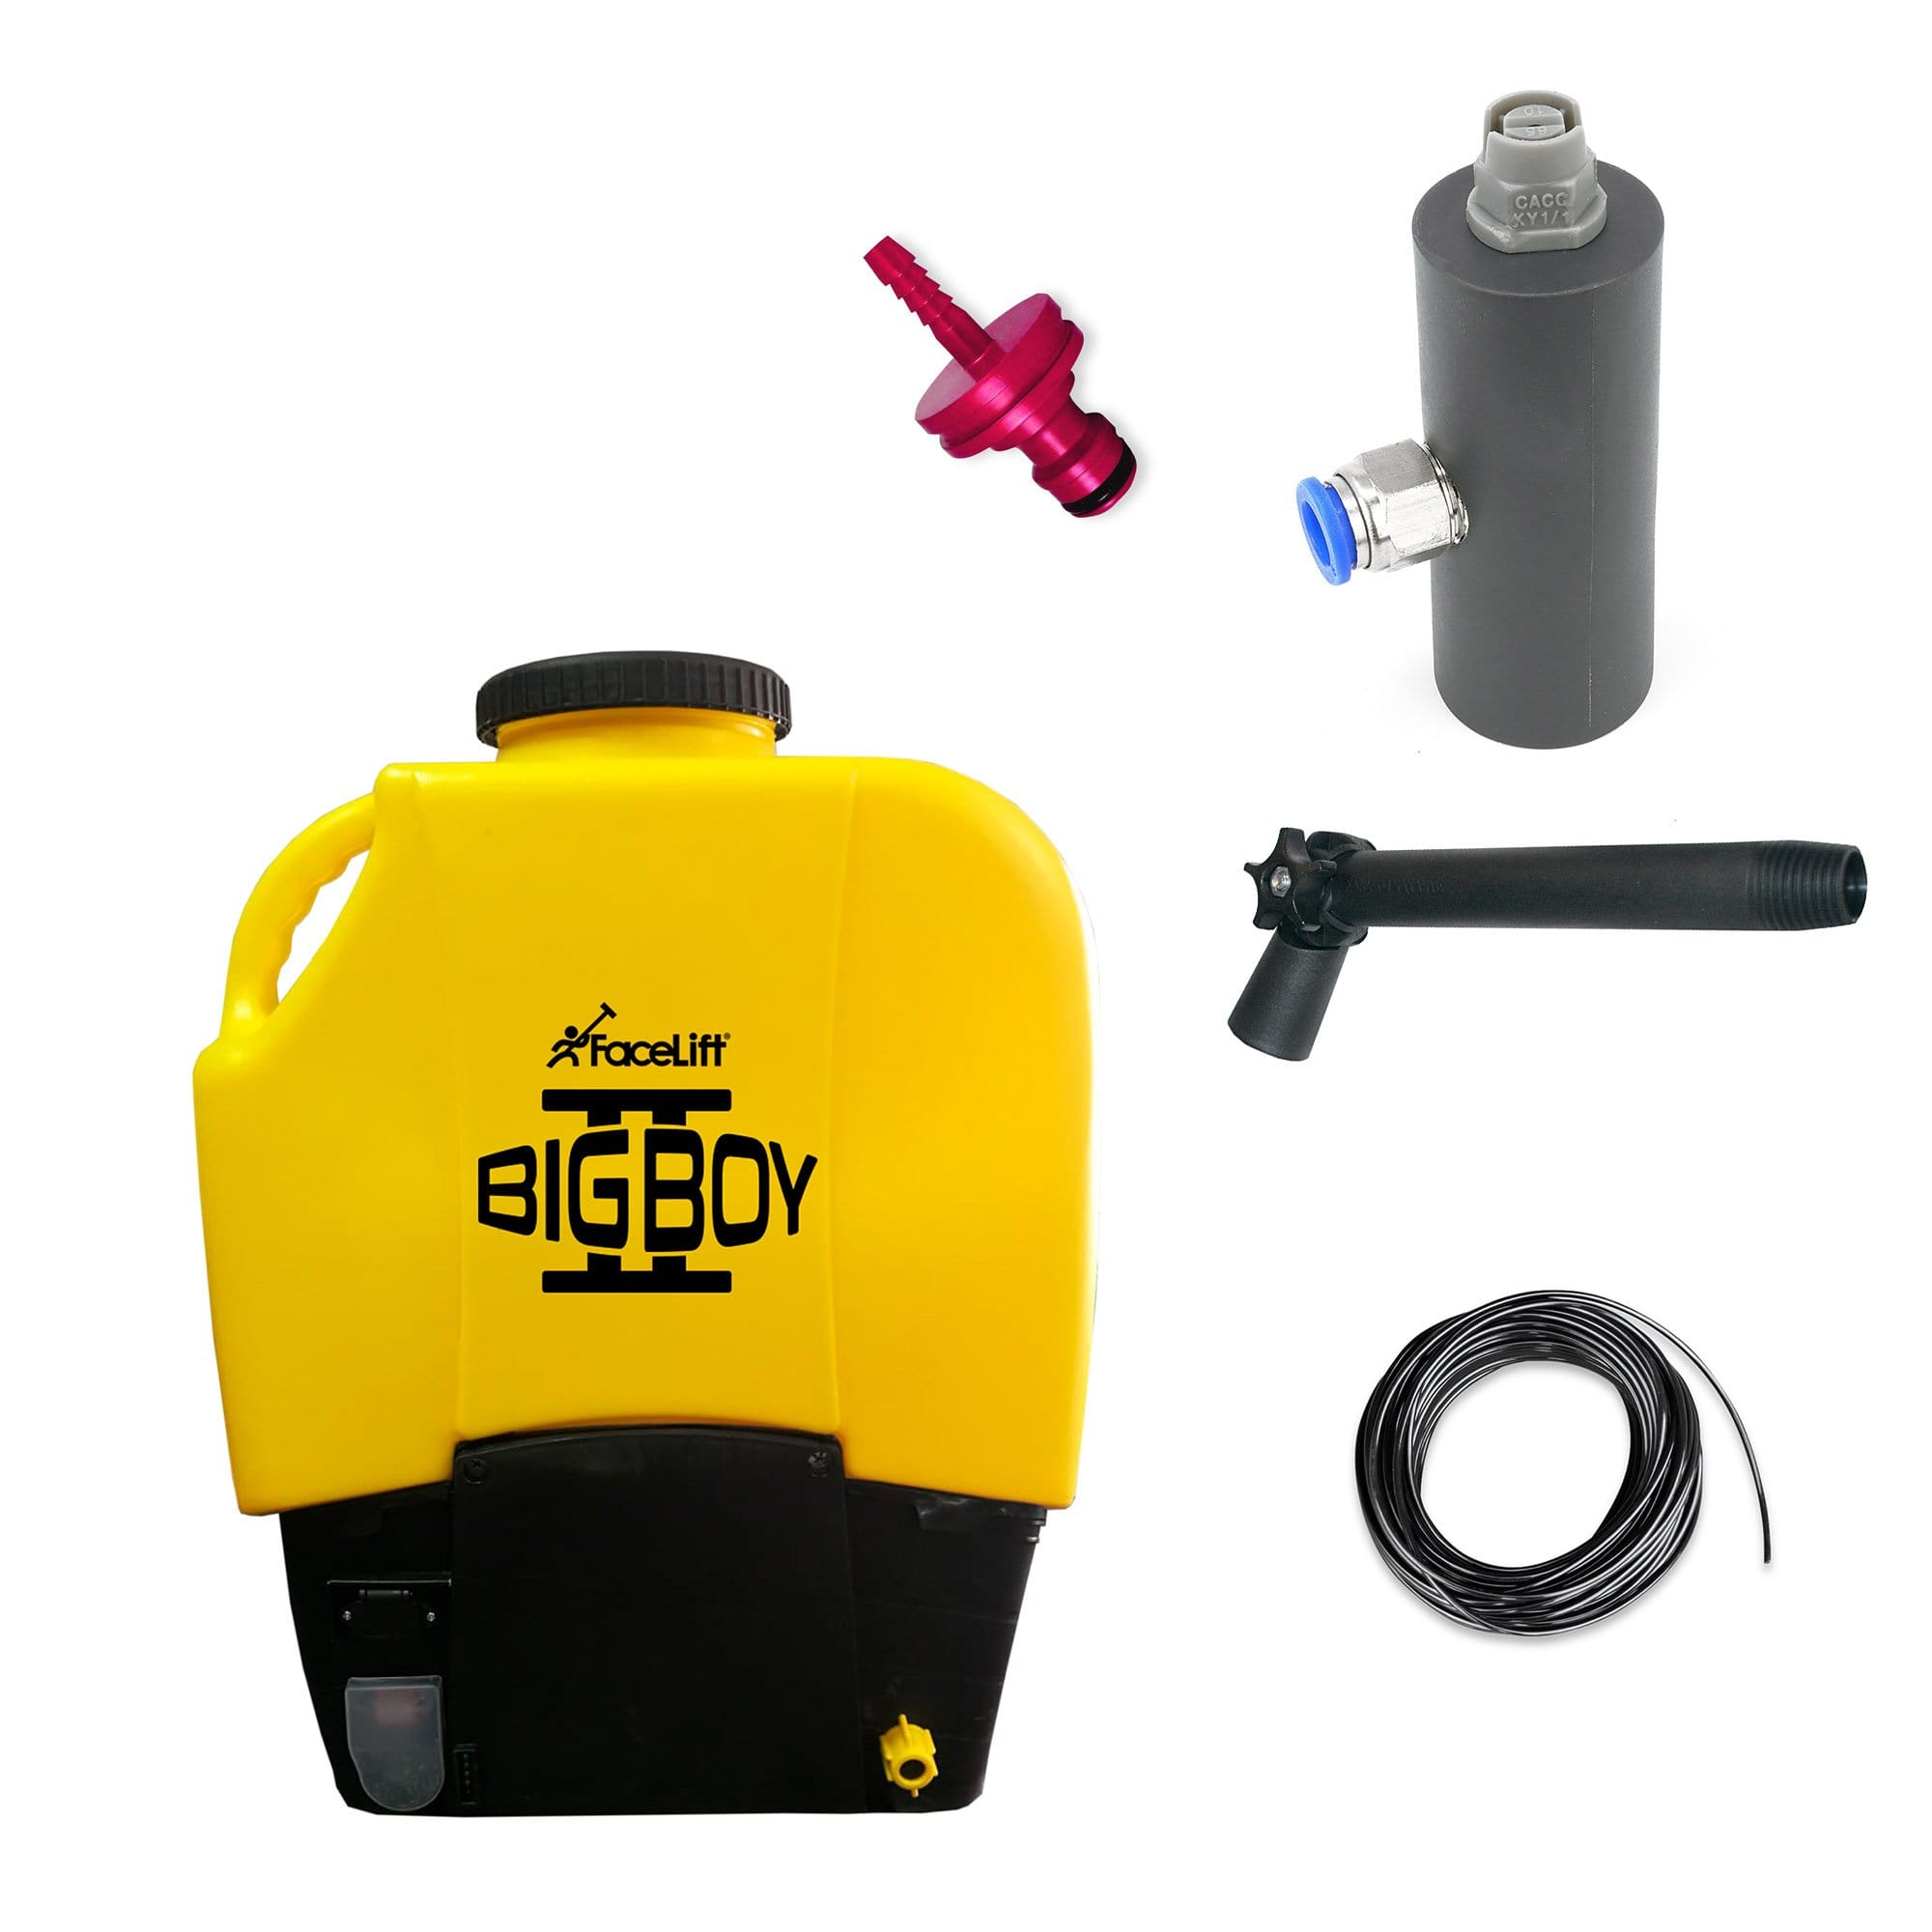 FaceLift® BigBOY 2 DEEP CLEAN Chemical Sprayer